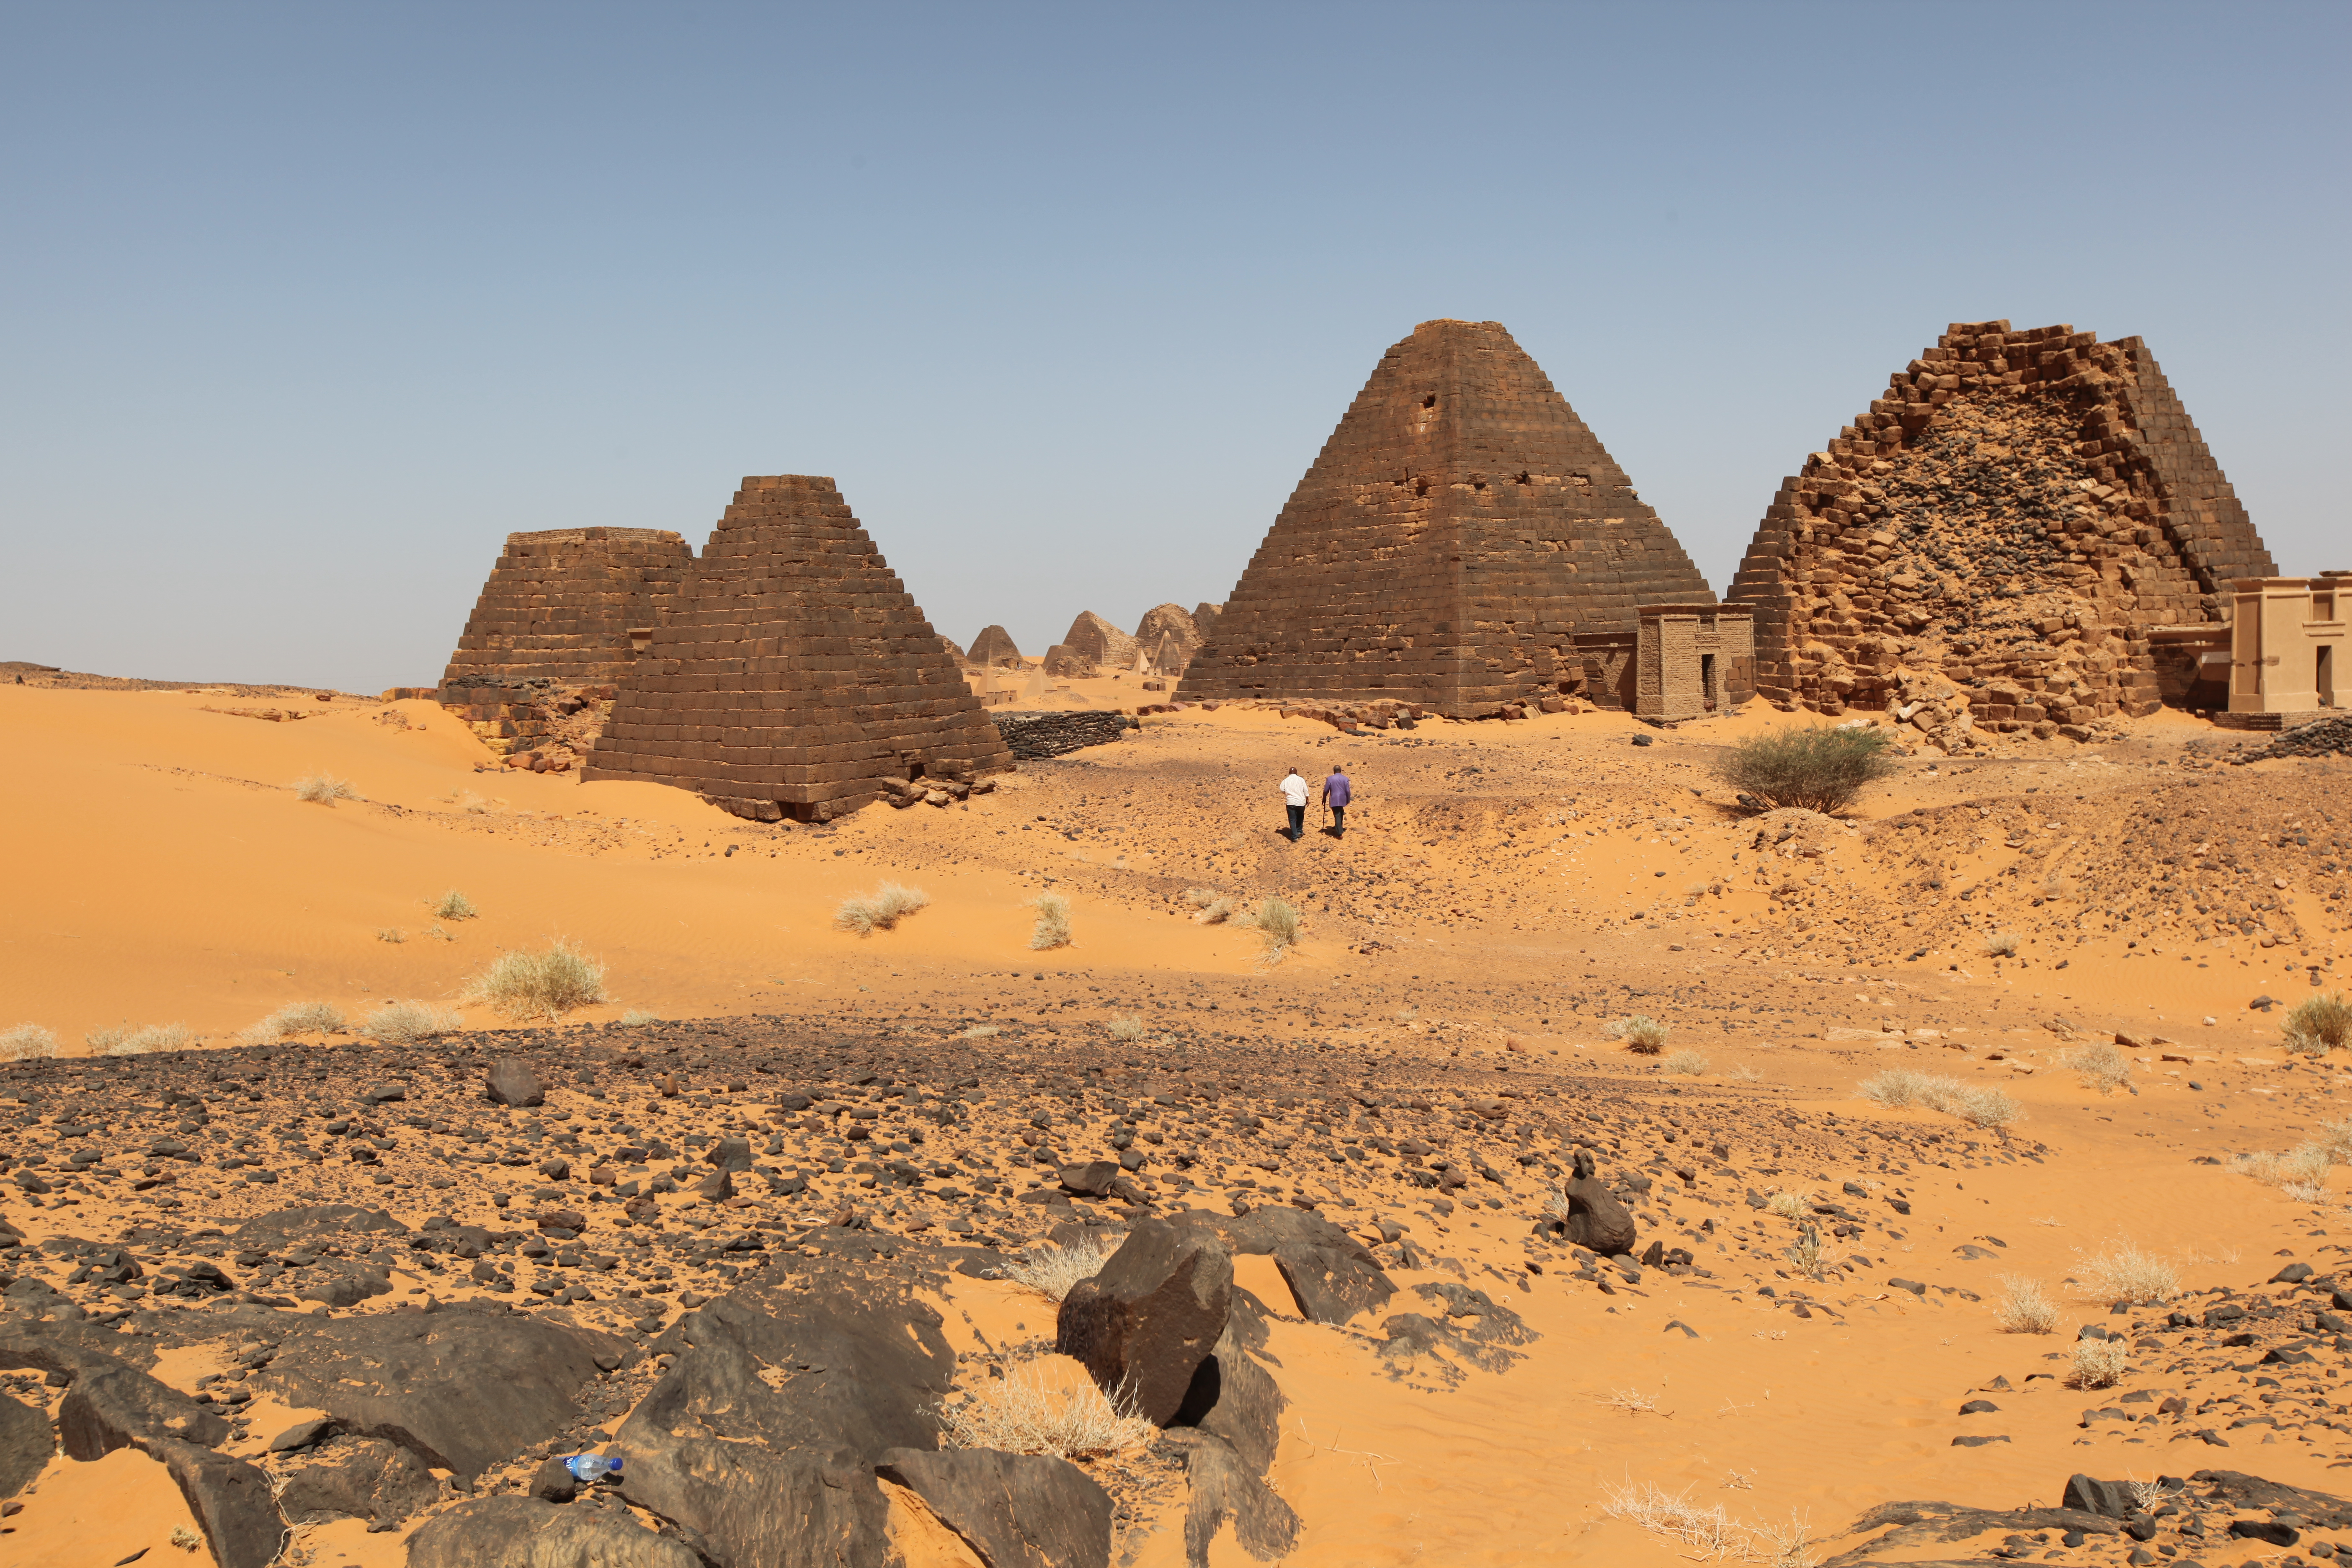 Africa's Great Civilizations - 9 p.m. February 27 and March 1